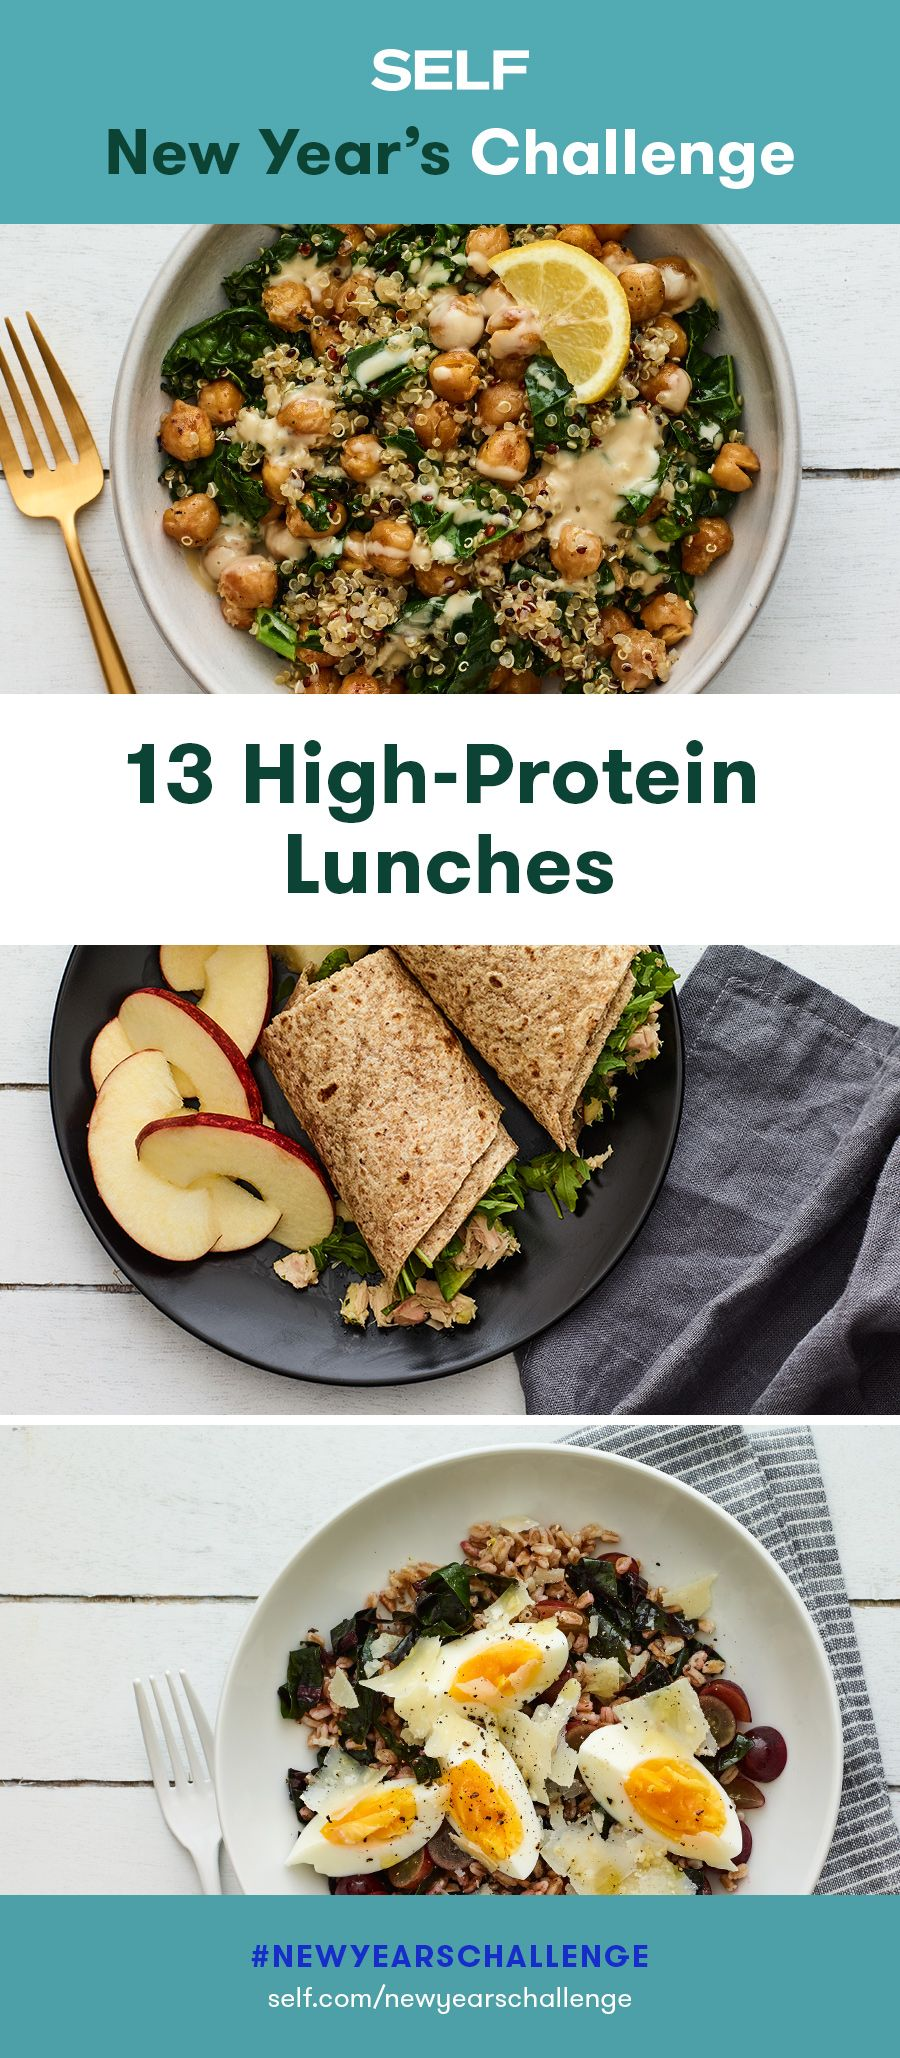 13 High-Protein Lunches You Can Bring to Work